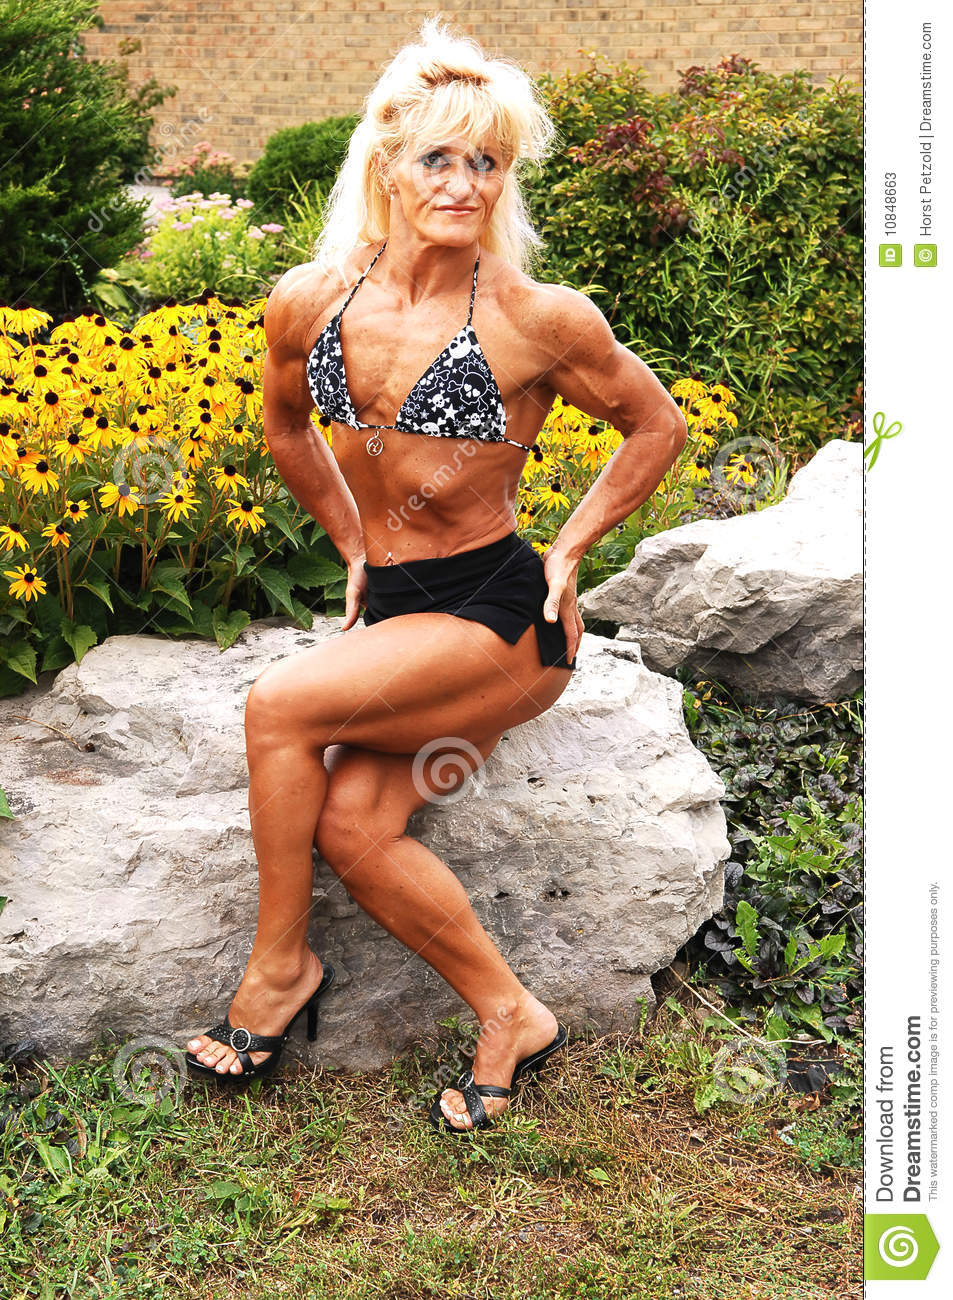 Bodybuilding Woman On Location. Stock Photos - Image: 10848663